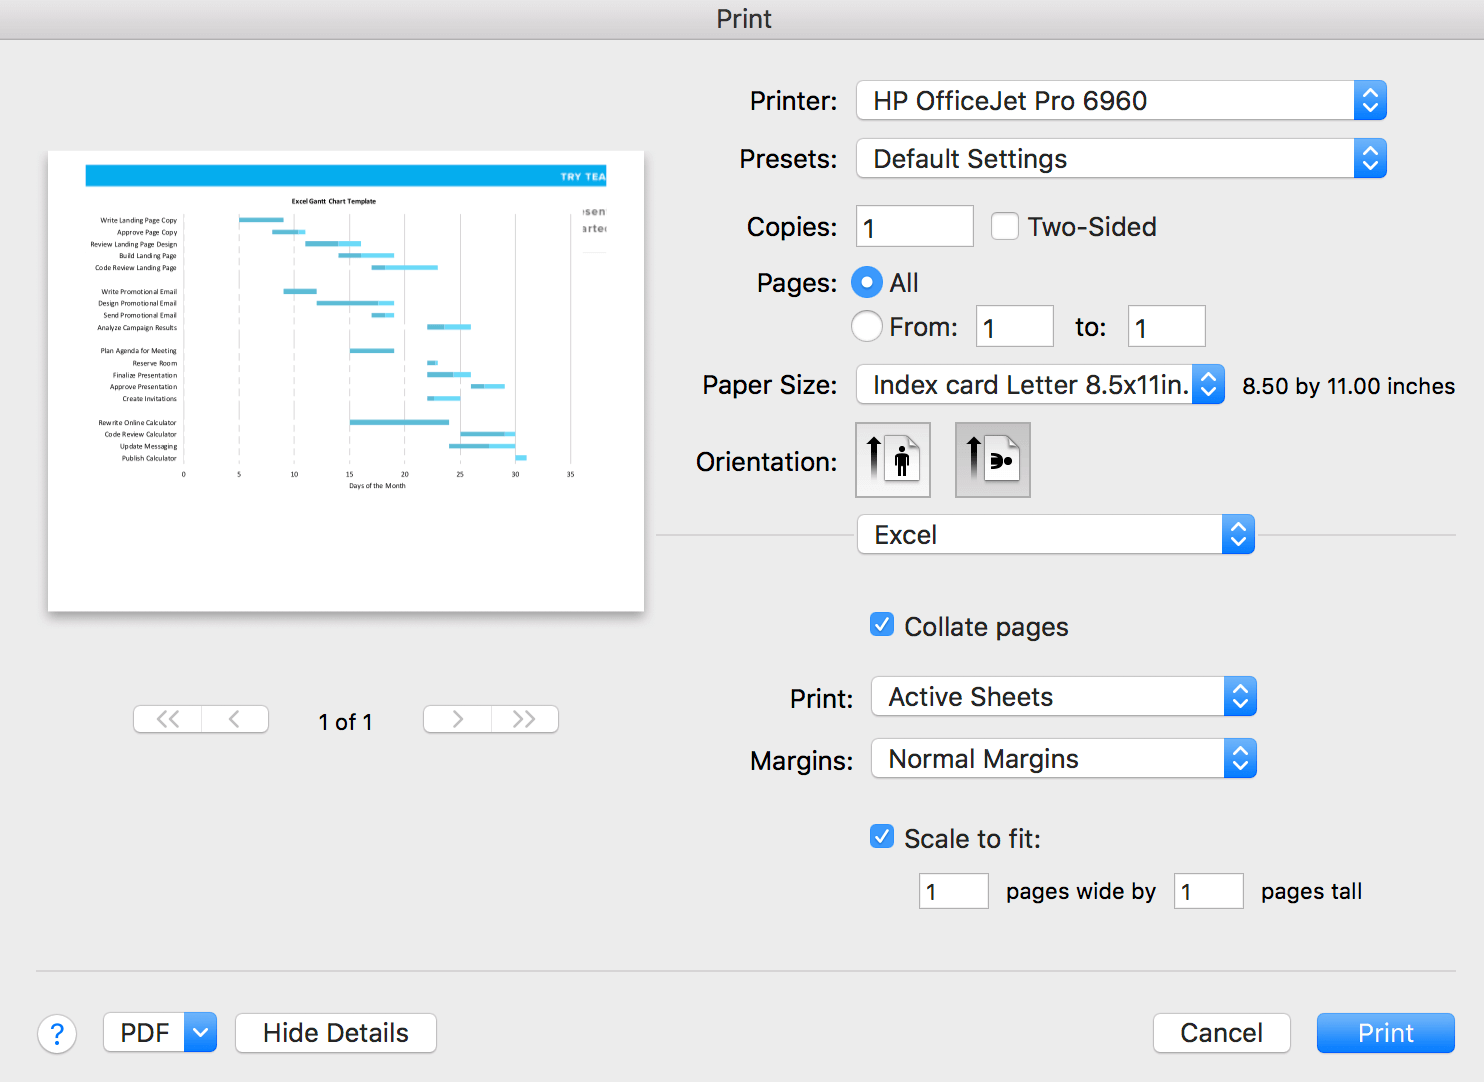 gantt chart printer settings